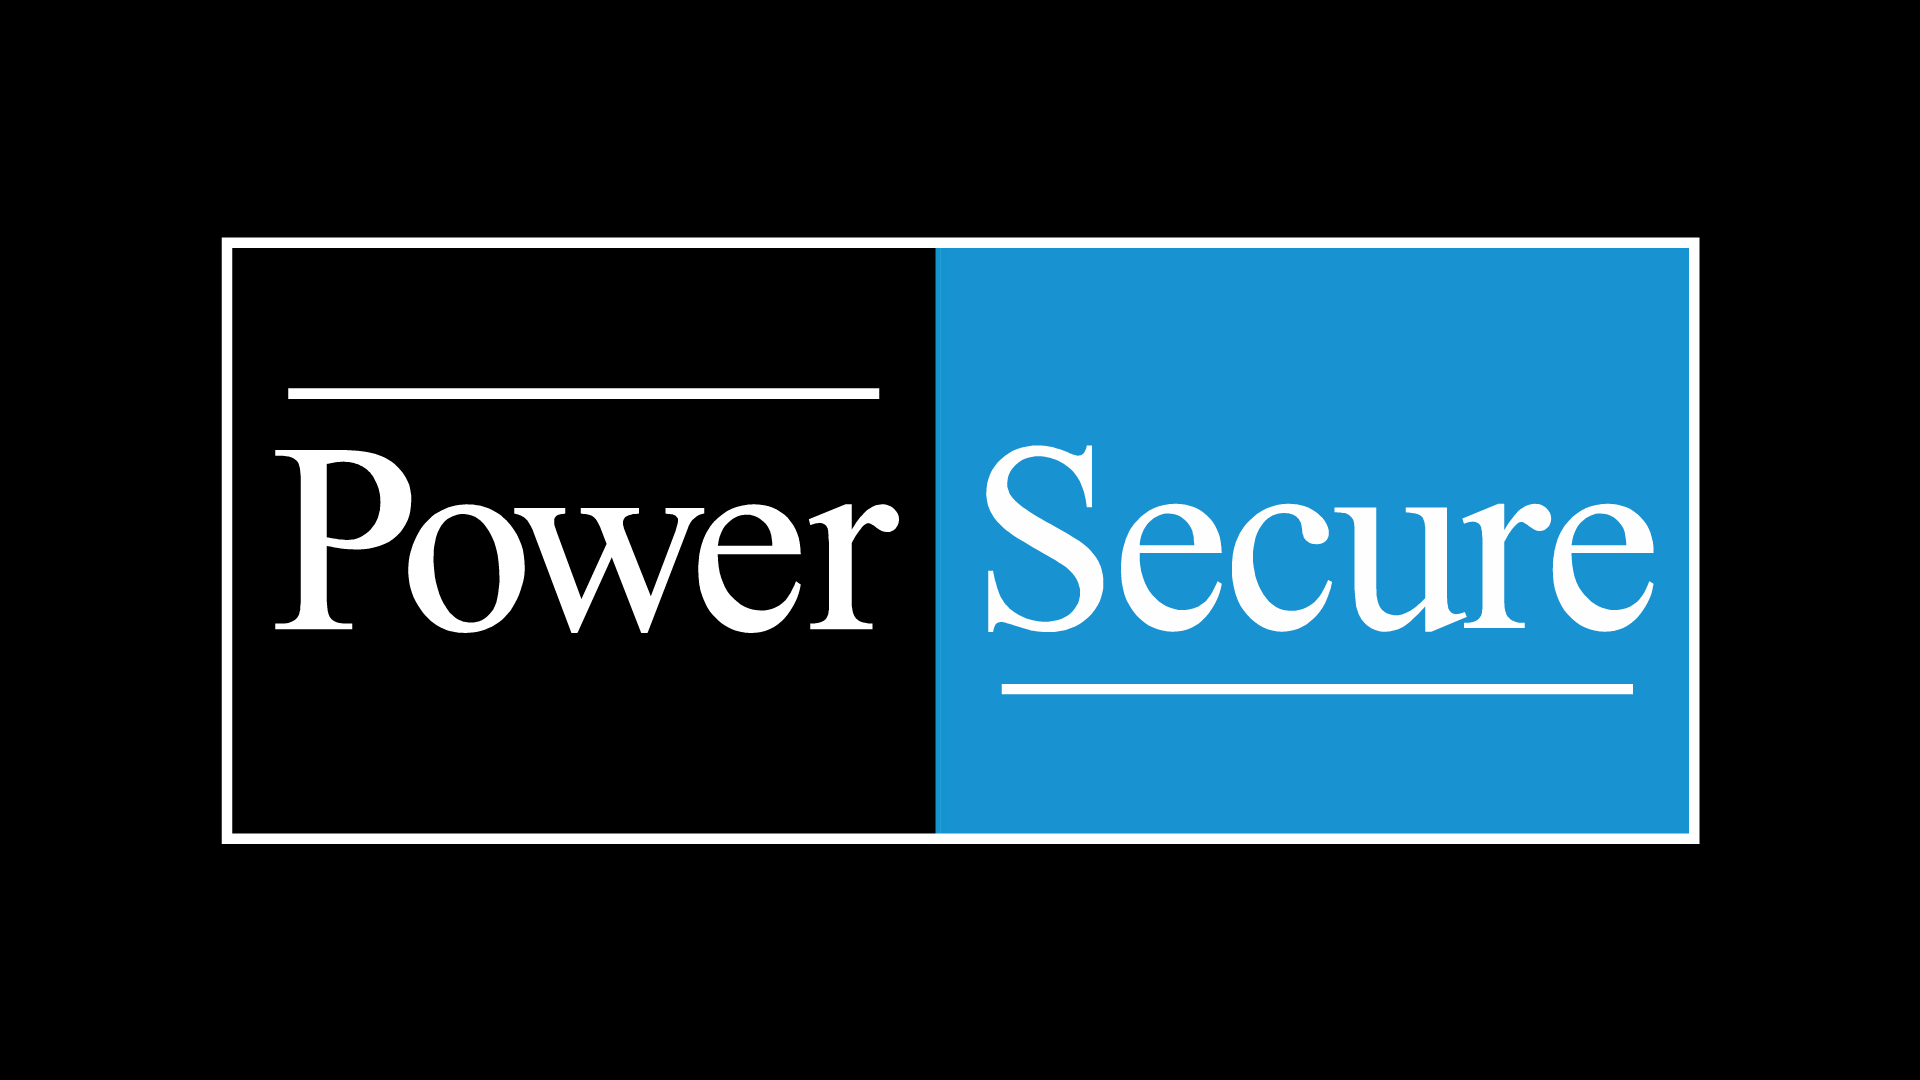 power secure logo